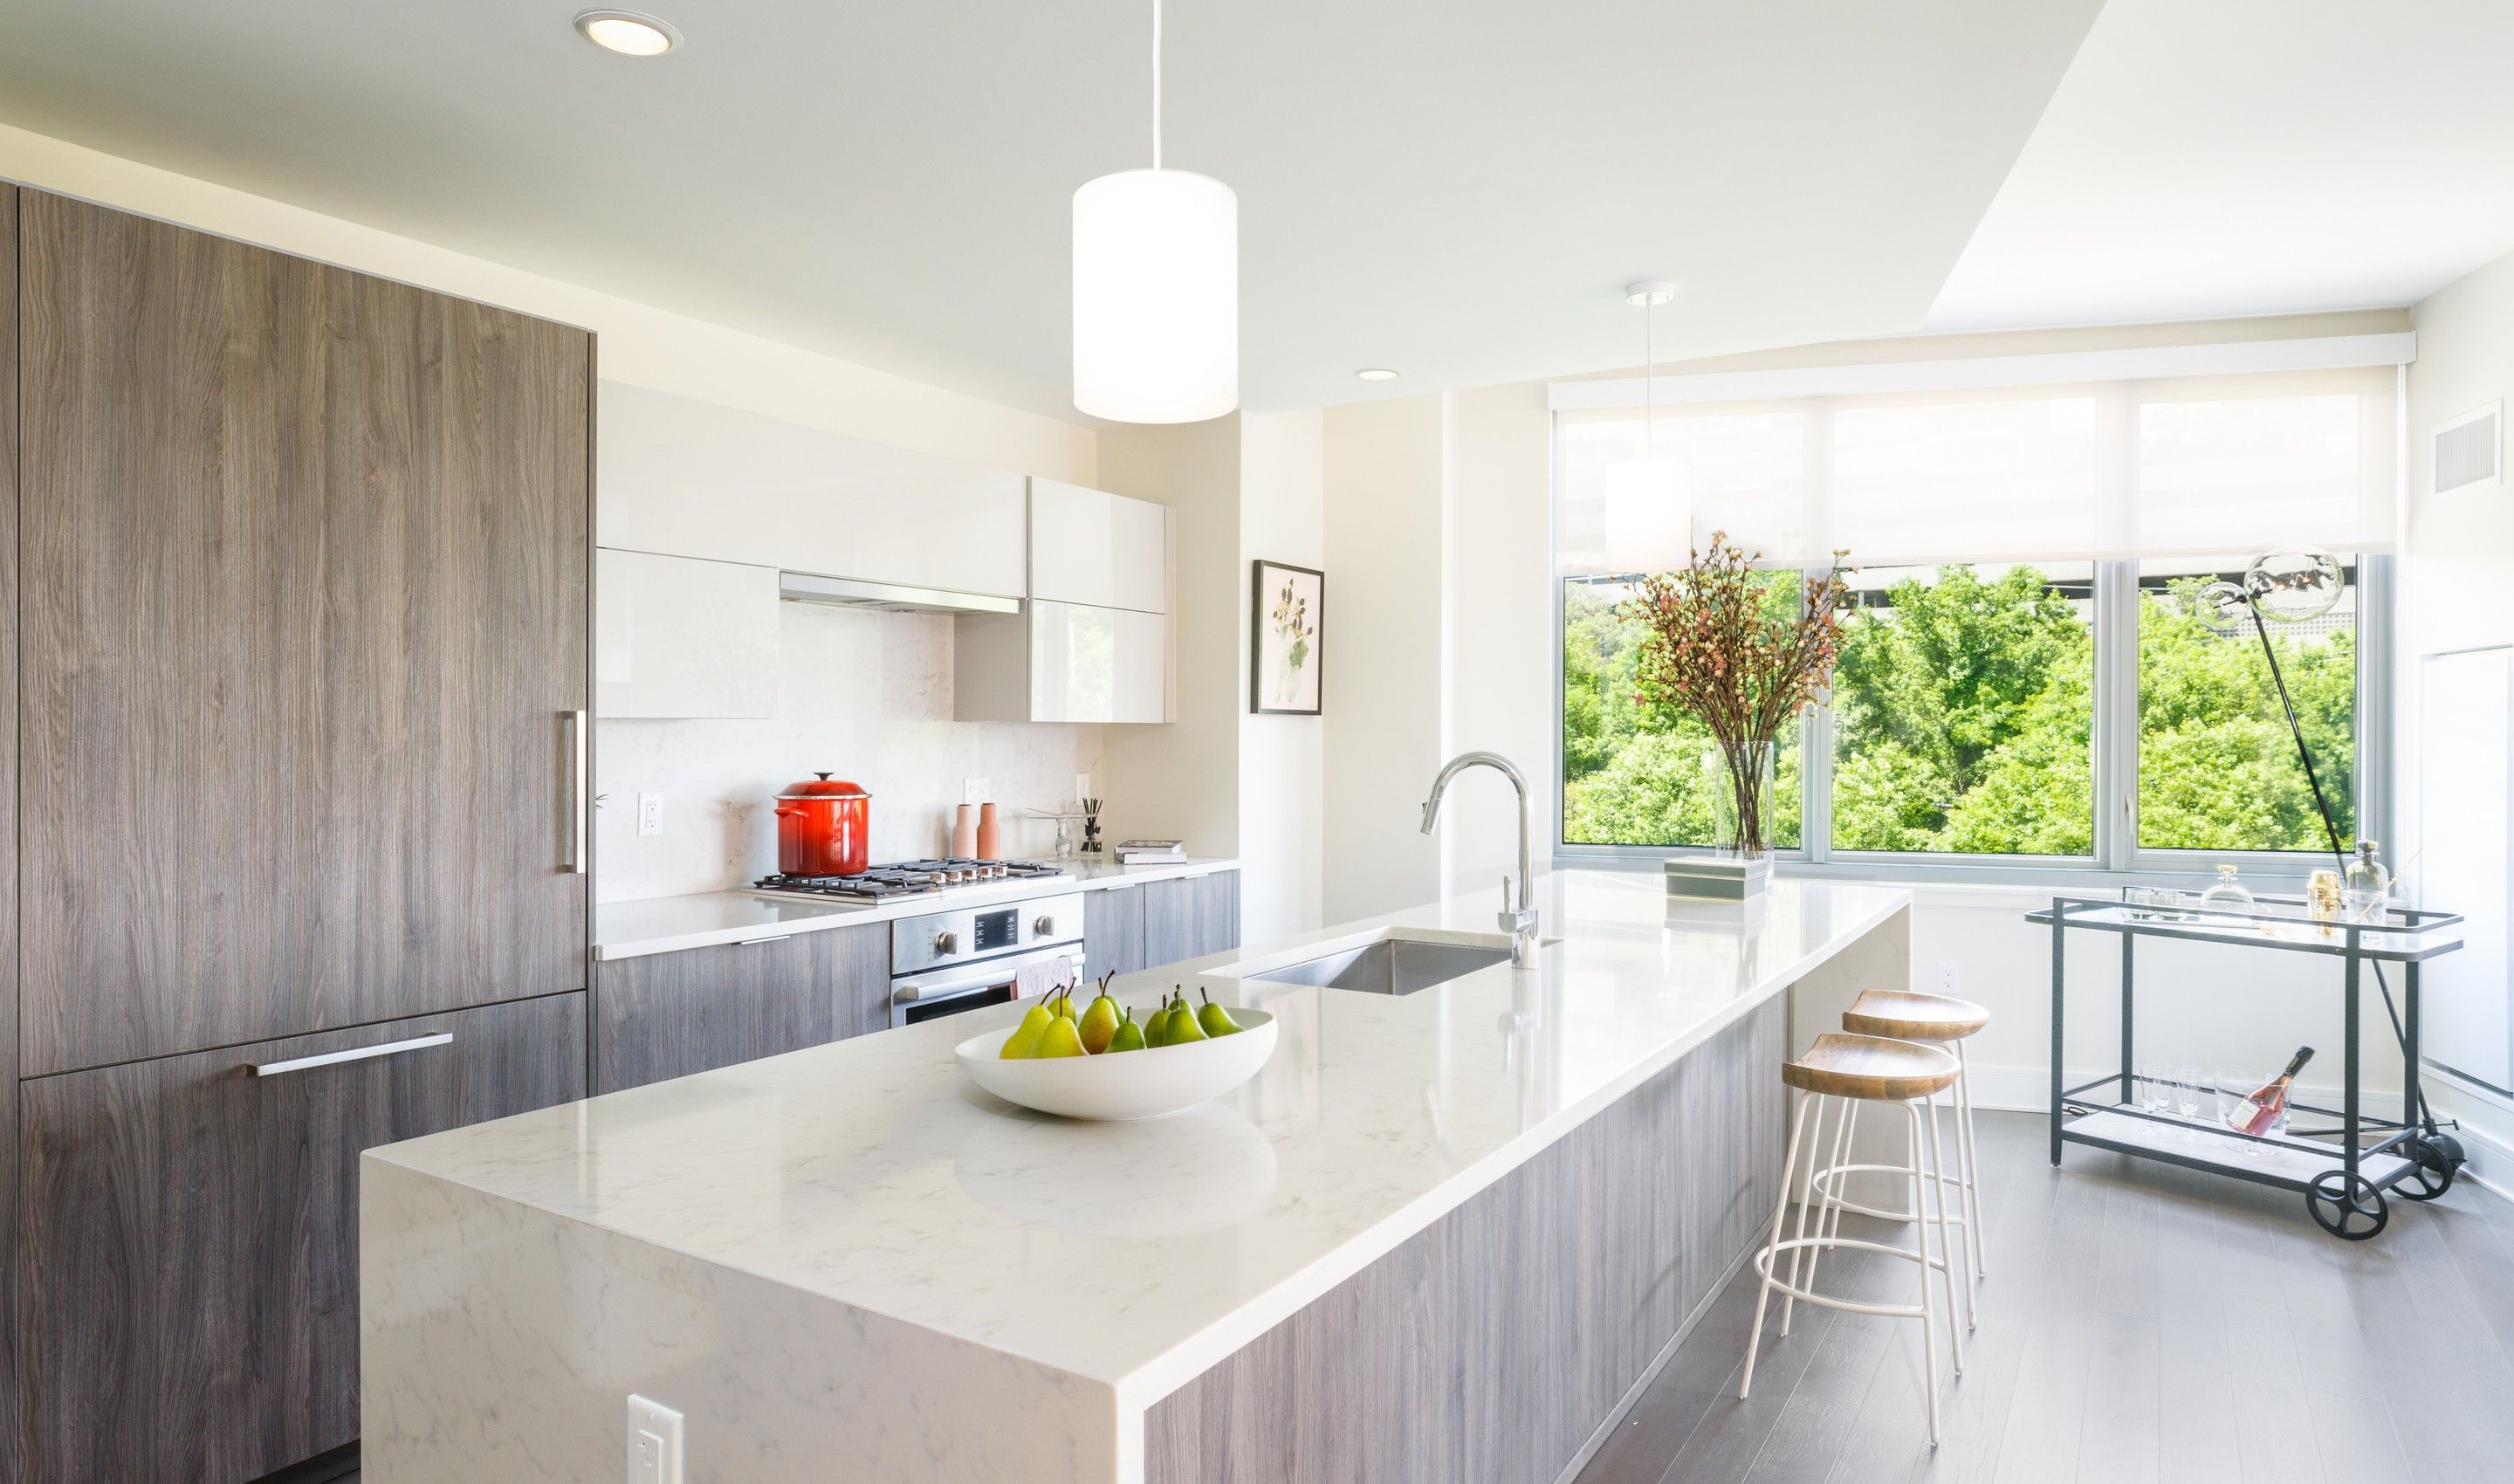 Kitchen featured in the B16 By K. Hovnanian® Homes in Hudson County, NJ